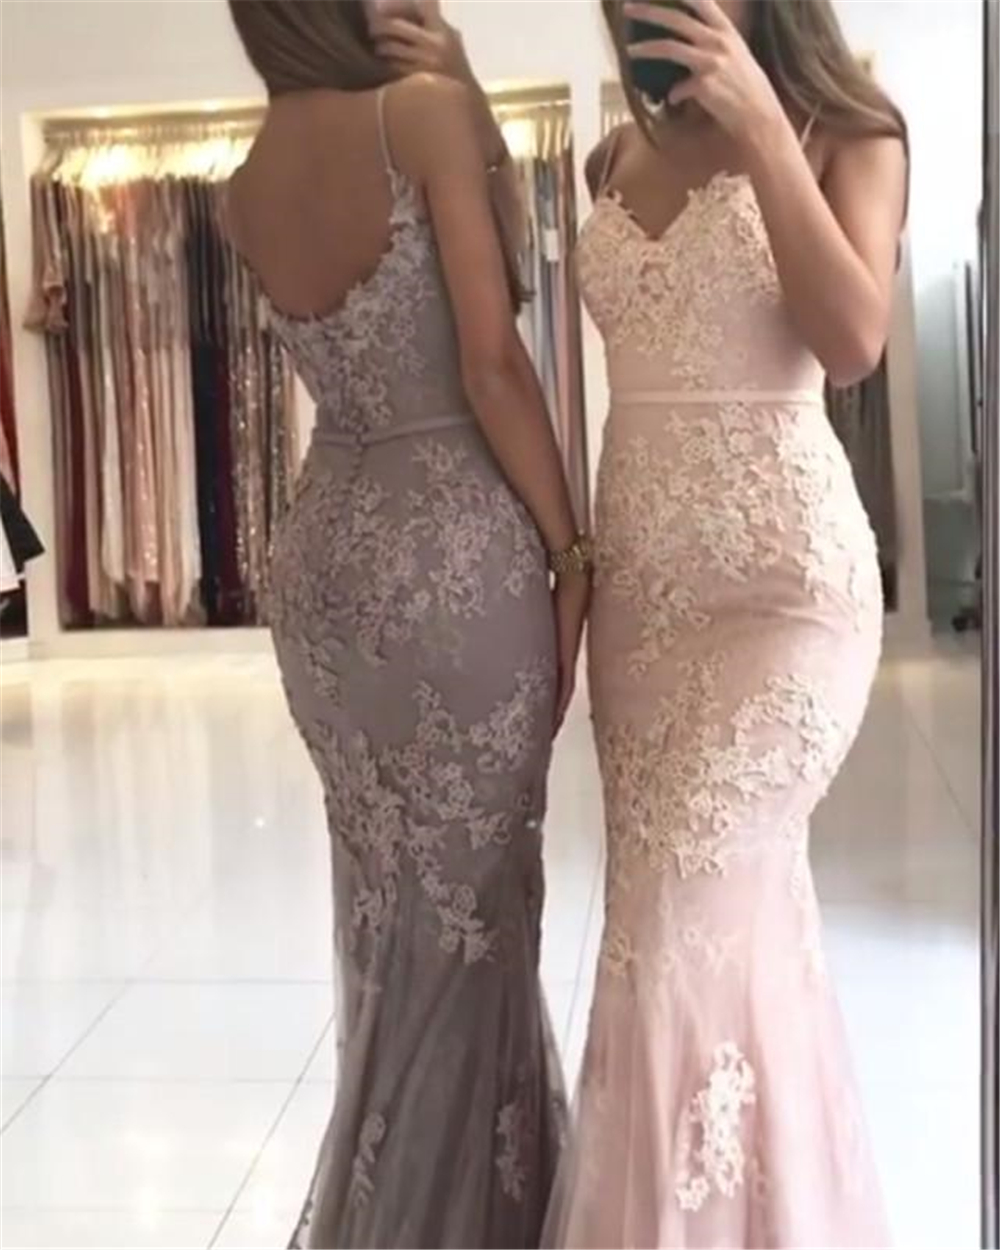 Sparkling Prom Dresses Handmade Spaghetti Straps Sheath Appliques Tulle Sweep Train Dropped Mermaid Prom Gowns Evening Dresses